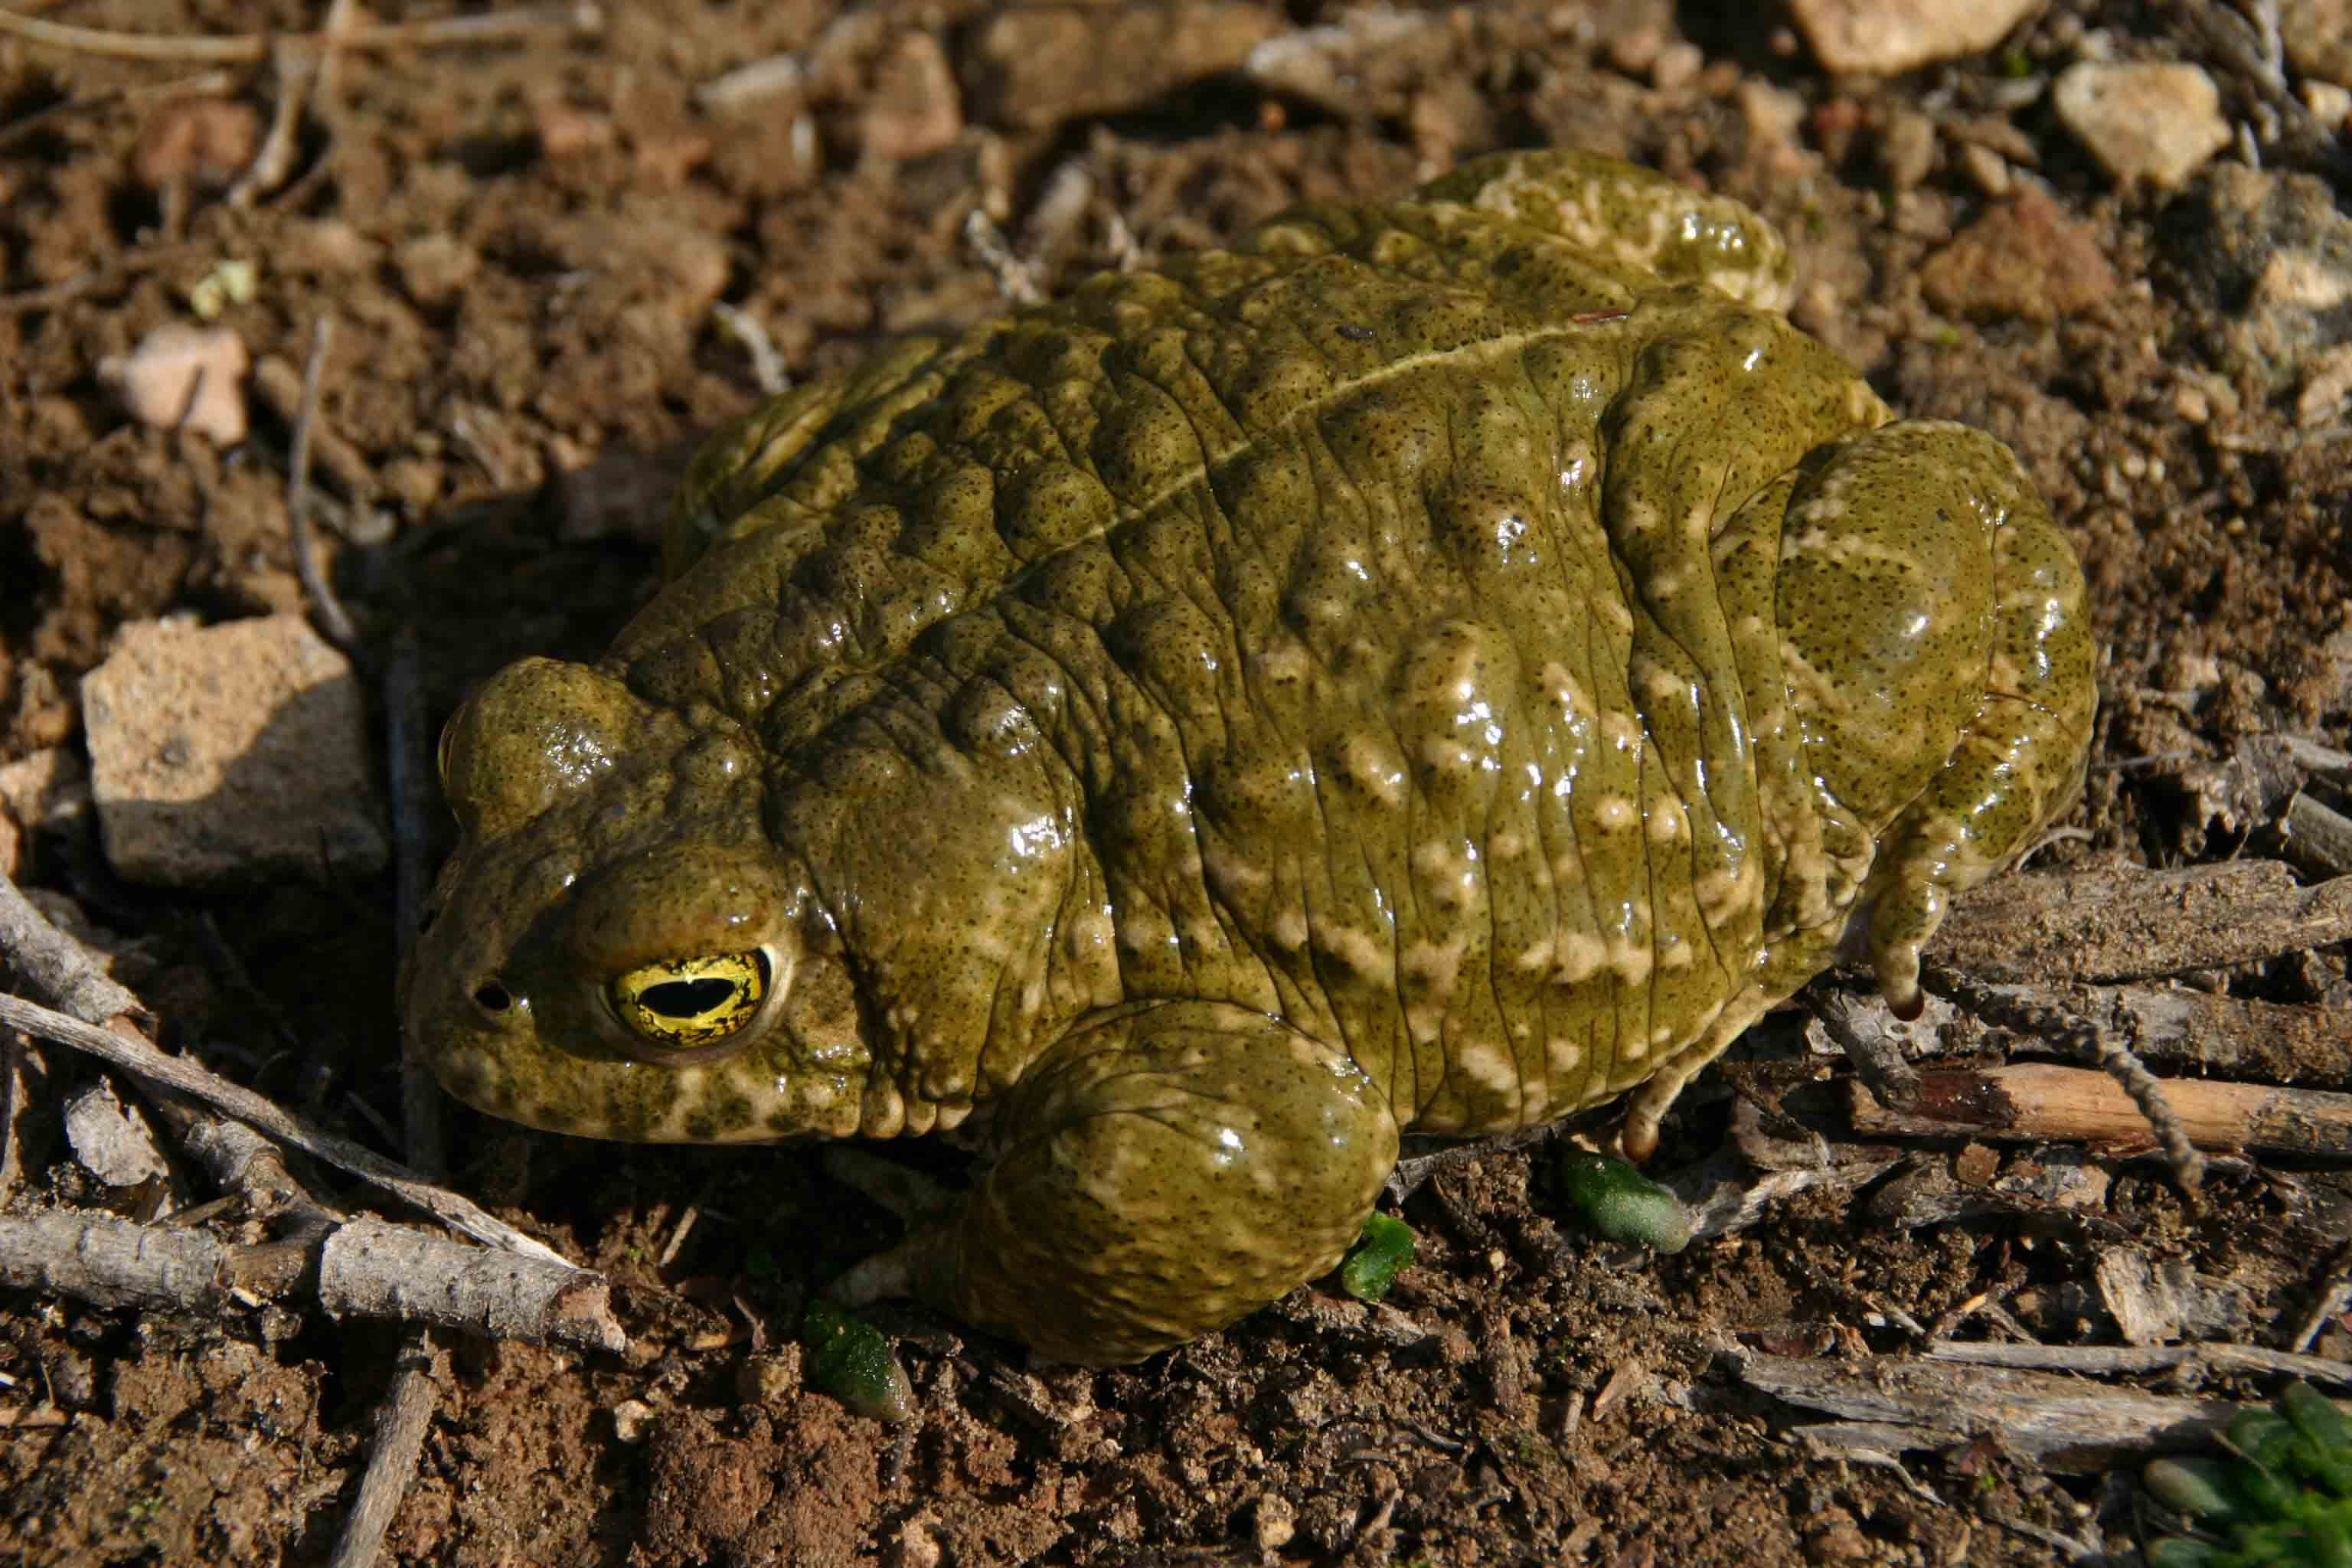 One of two huge Natterjacks found beneath a stone slab